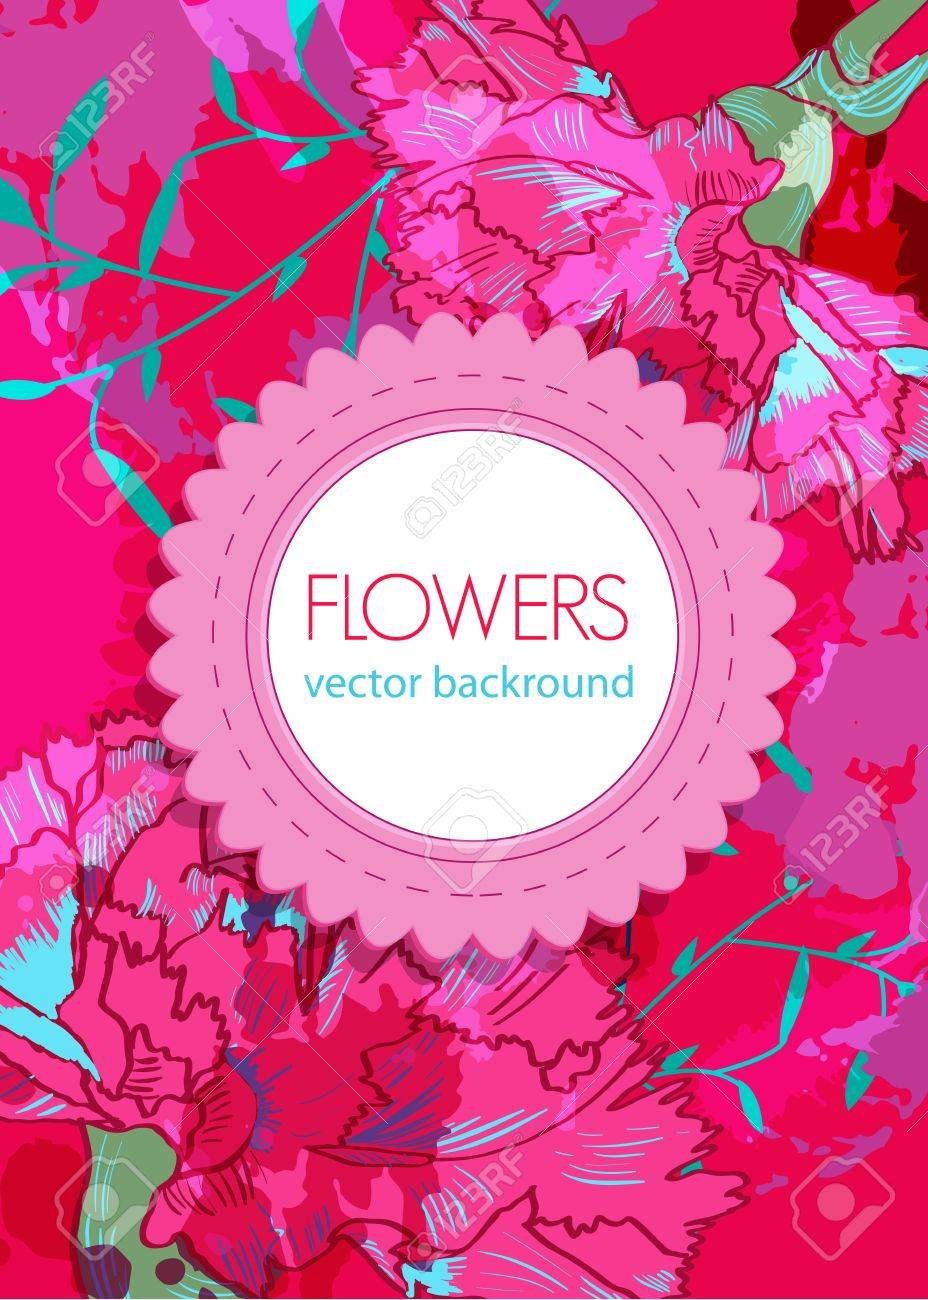 Vector floral background with pink drawing flowers Stock Vector - 13652856